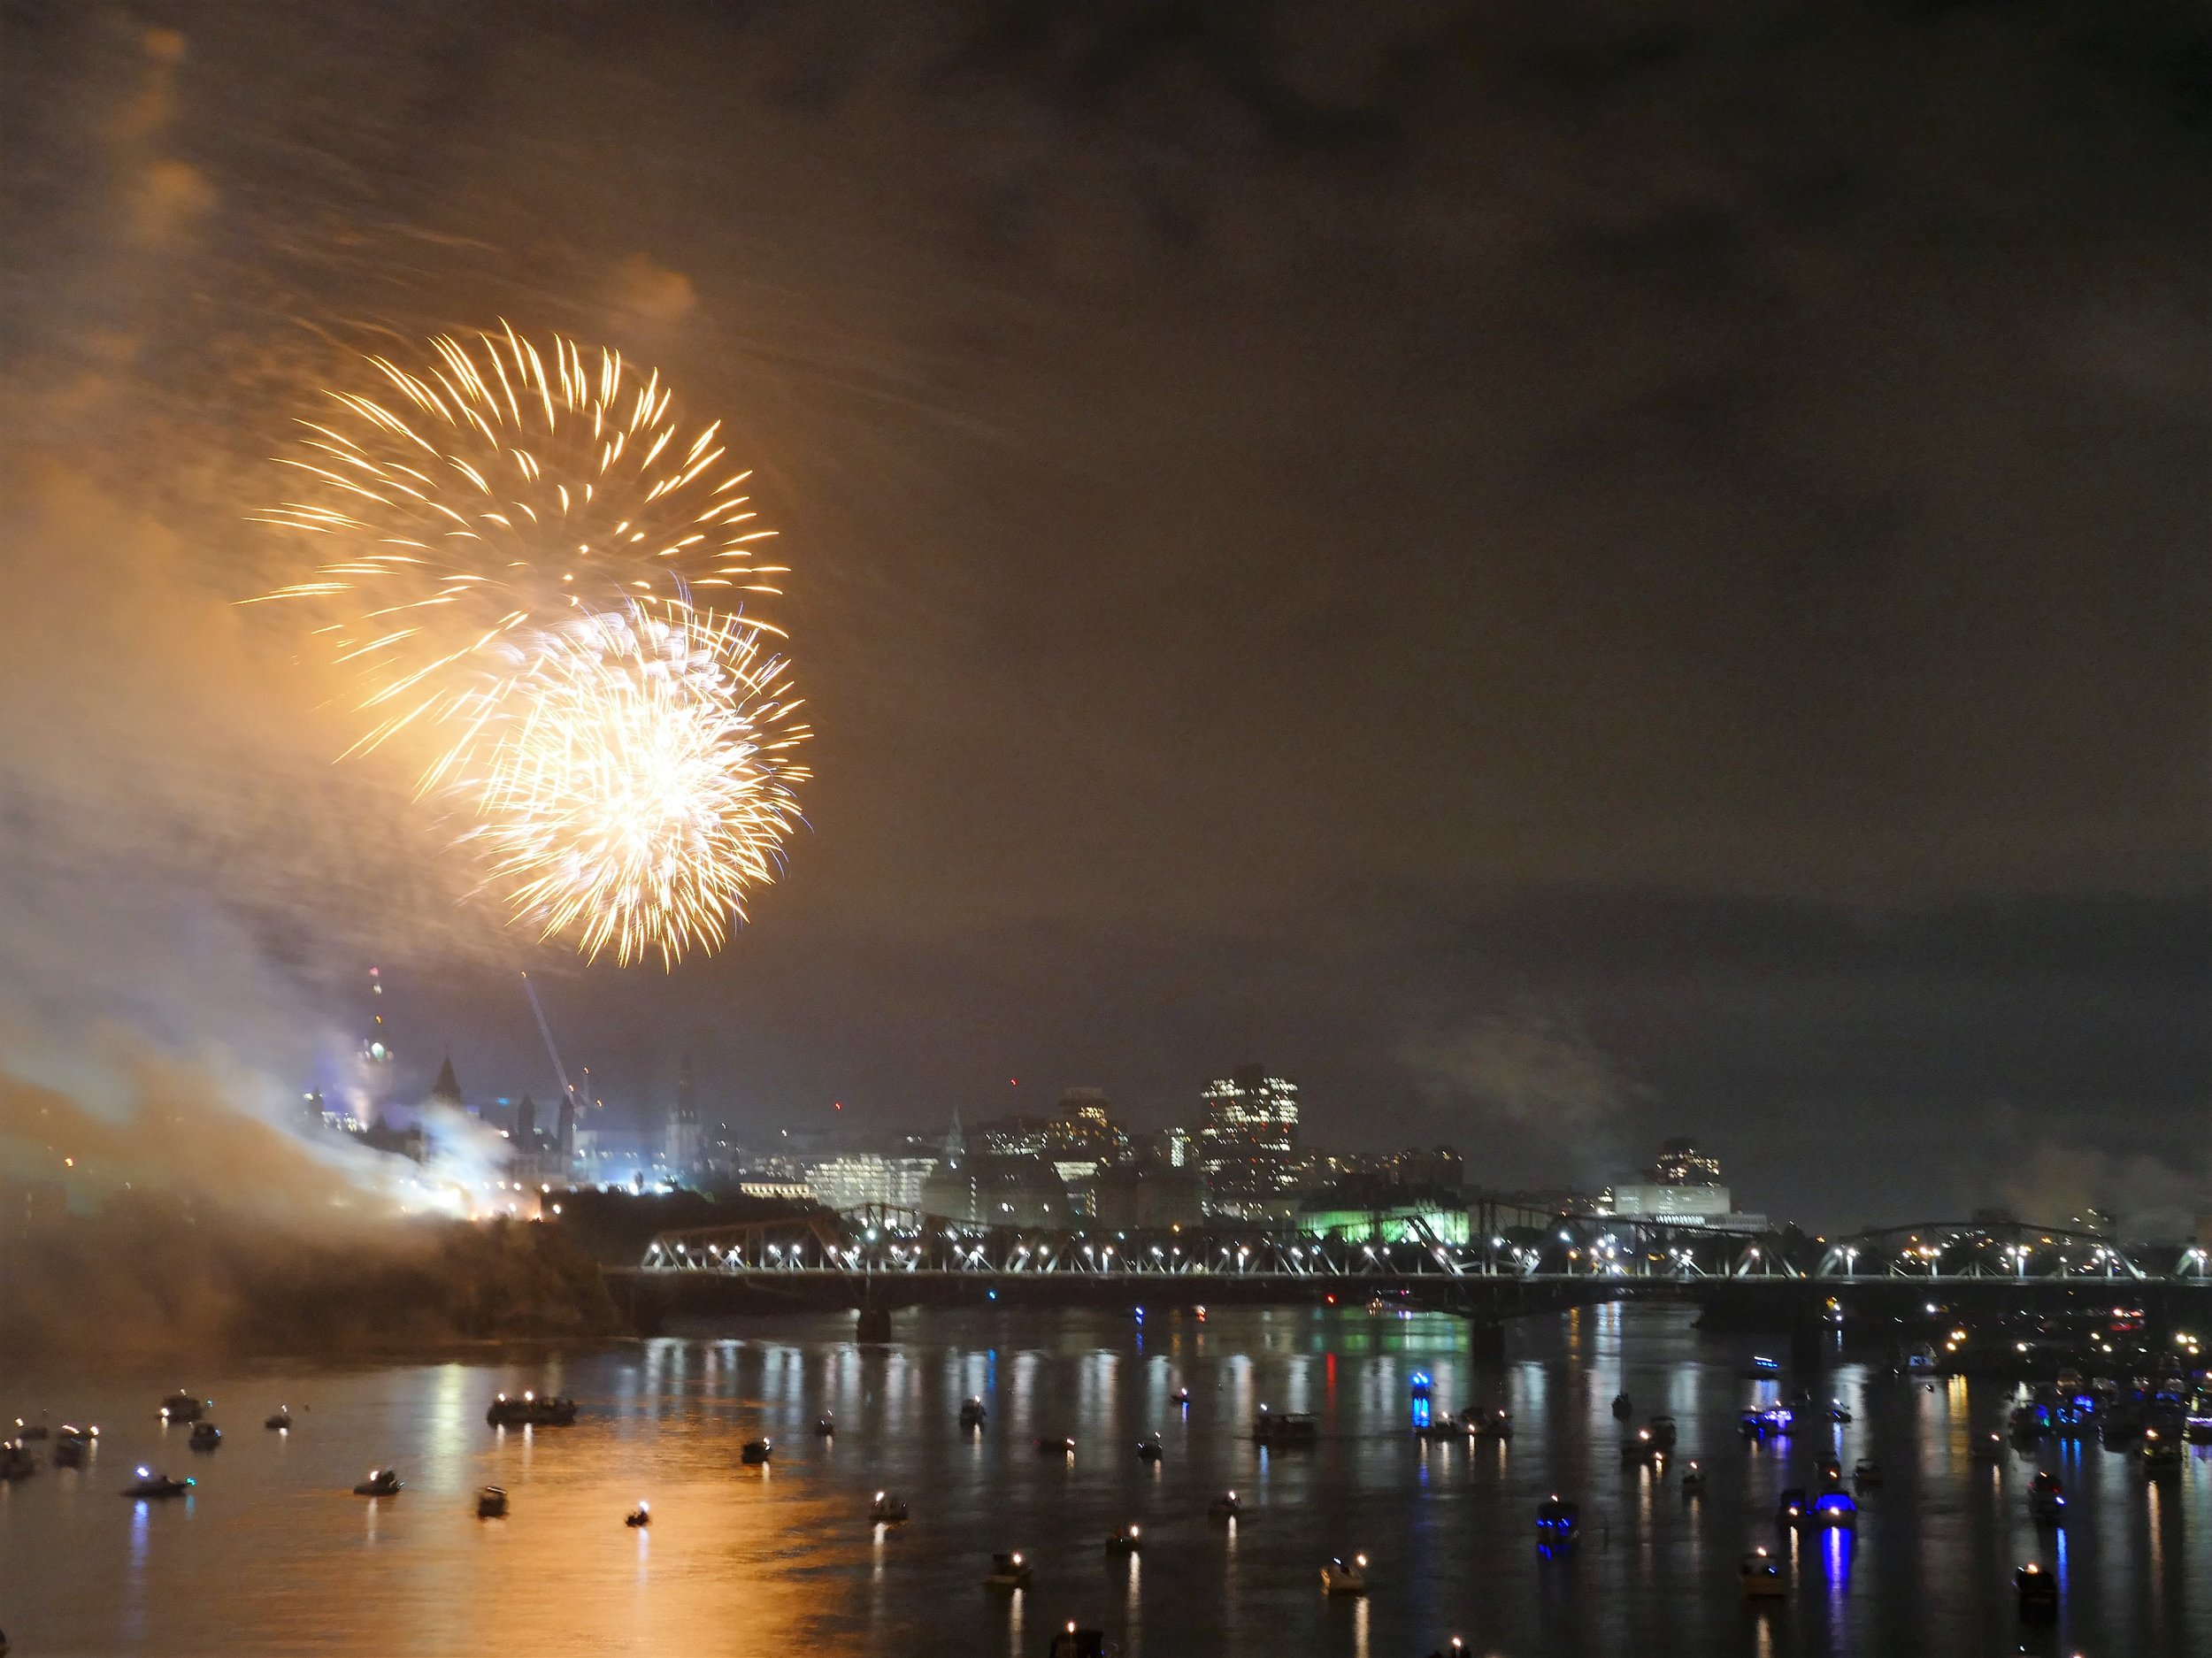 The fireworks lit up the river and were pretty impressive. Happy Canada Day.